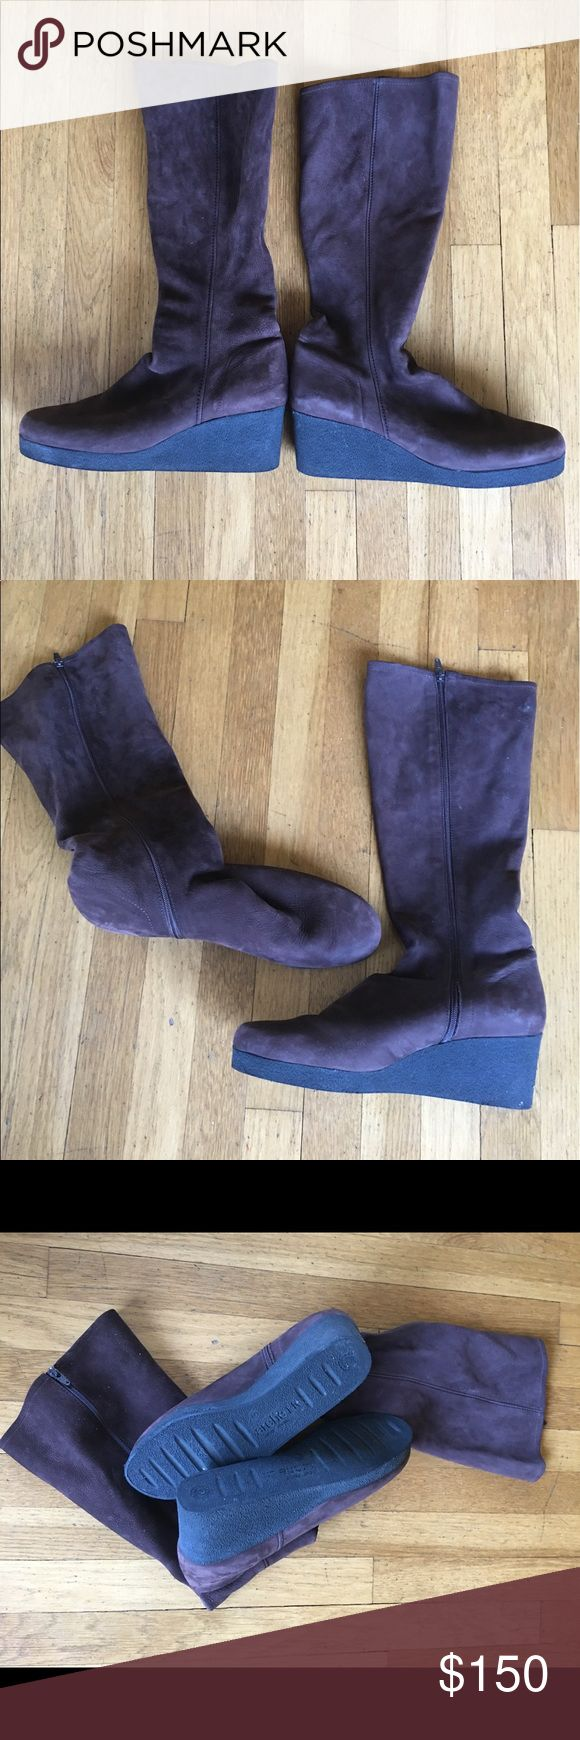 Arche Boots Made in France. Bought in Paris. No box. Very soft and comfortable. Size is too big for me. arche Shoes Winter & Rain Boots